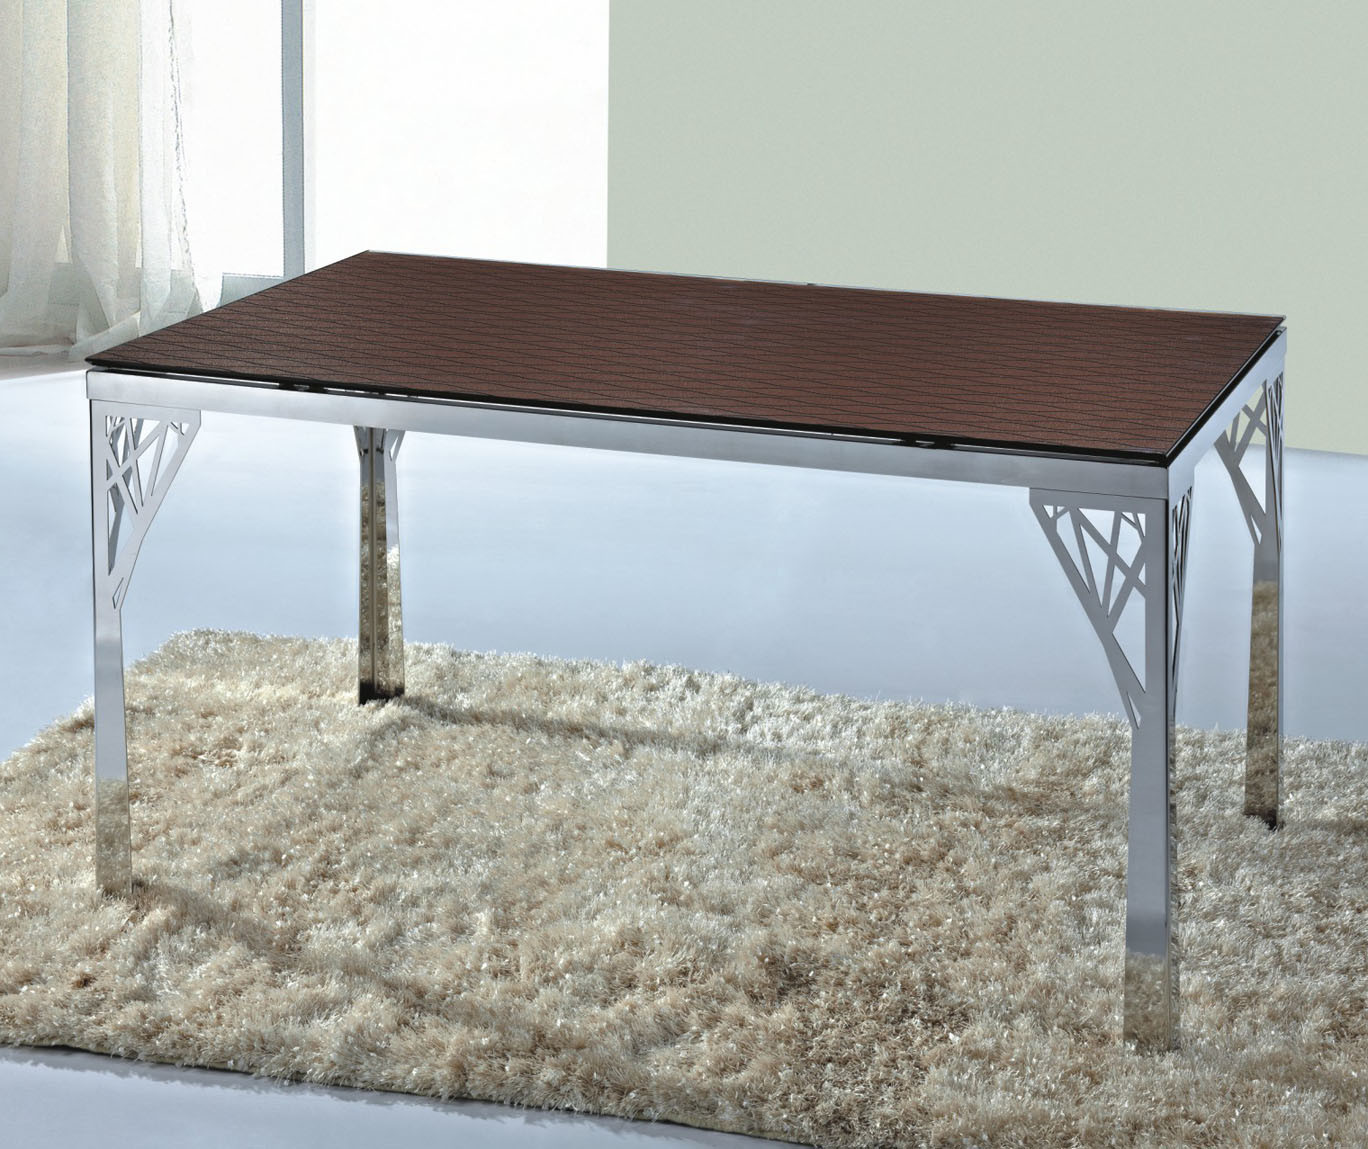 Best ideas about Stainless Steel Dining Table . Save or Pin China Stainless Steel Table Dining Table 3930 s Now.